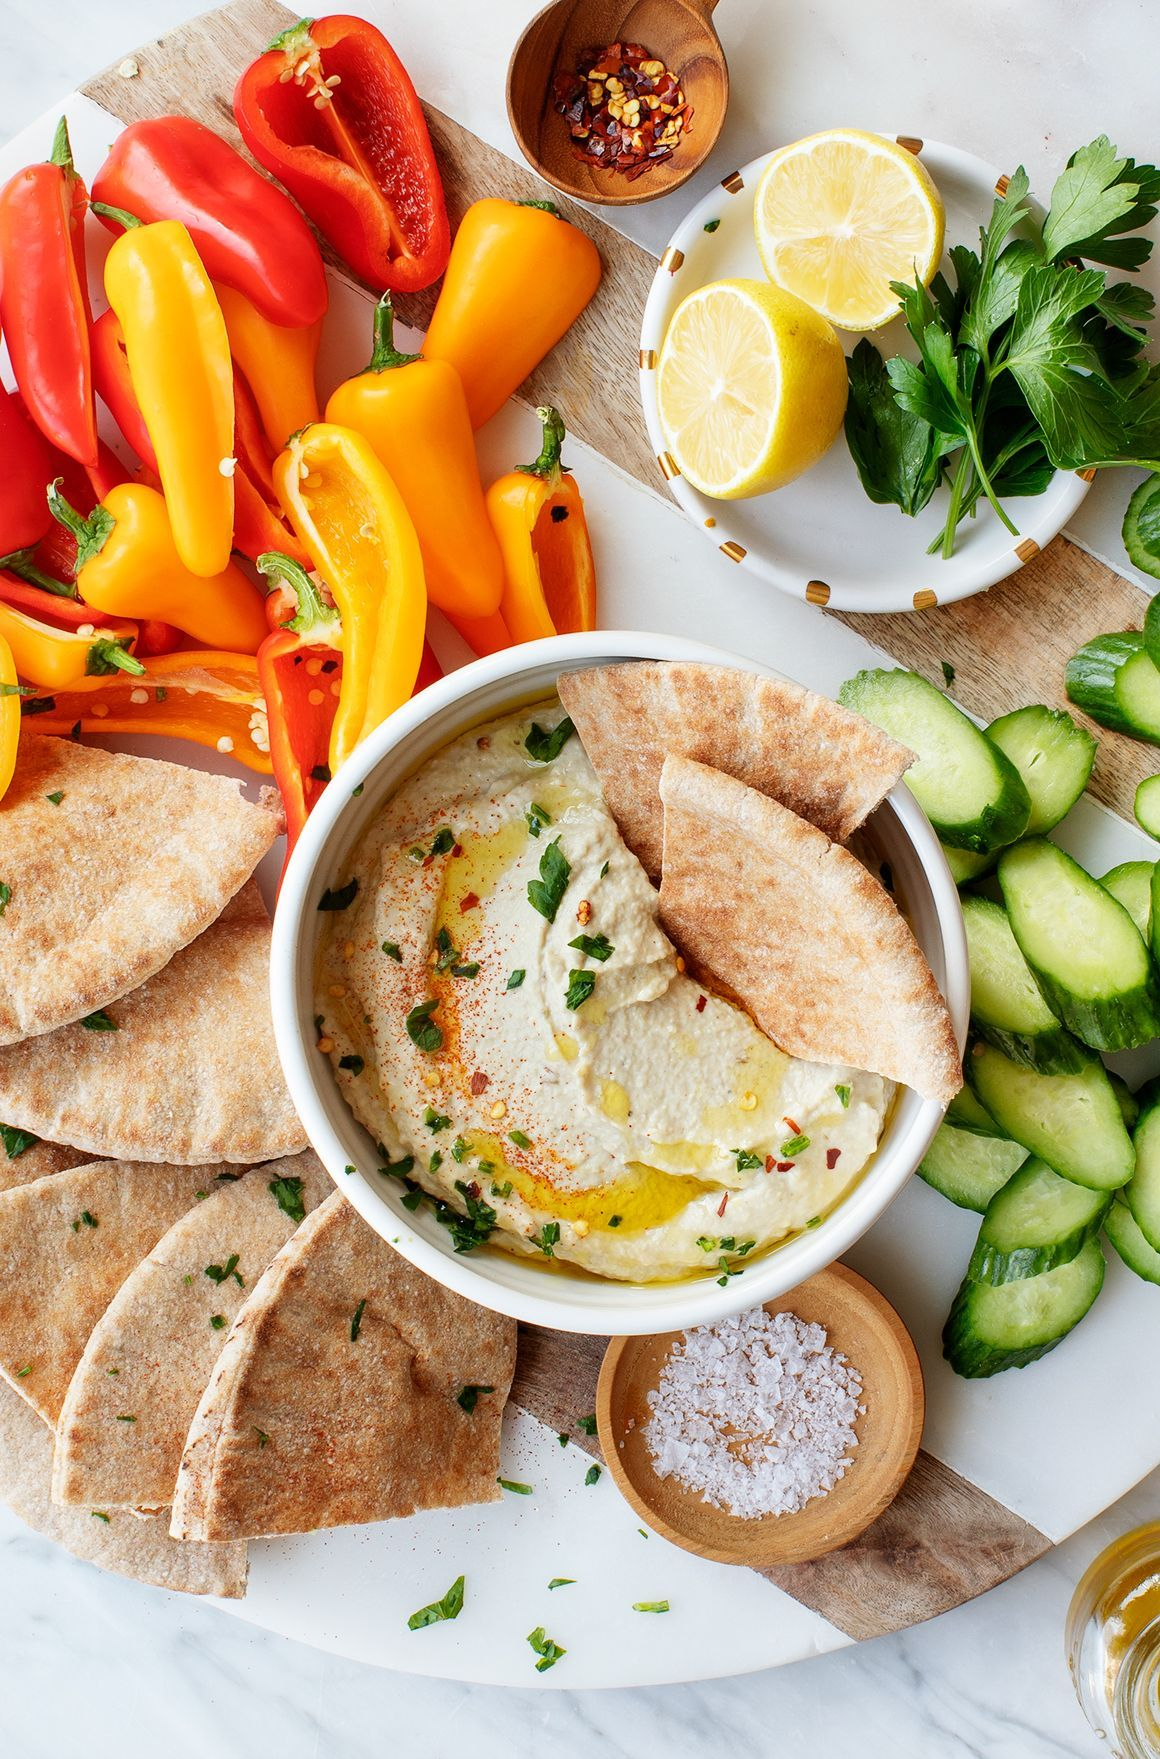 Baba Ganoush Recipe - Love and Lemons #babaganoushrezept Learn how to make baba ganoush with the BEST baba ganoush recipe! With just 6 ingredients, it's an easy, delicious healthy snack! We love it with lots of pita and veggies.   Love and Lemons #eggplant #appetizers #healthysnacks #cleaneating